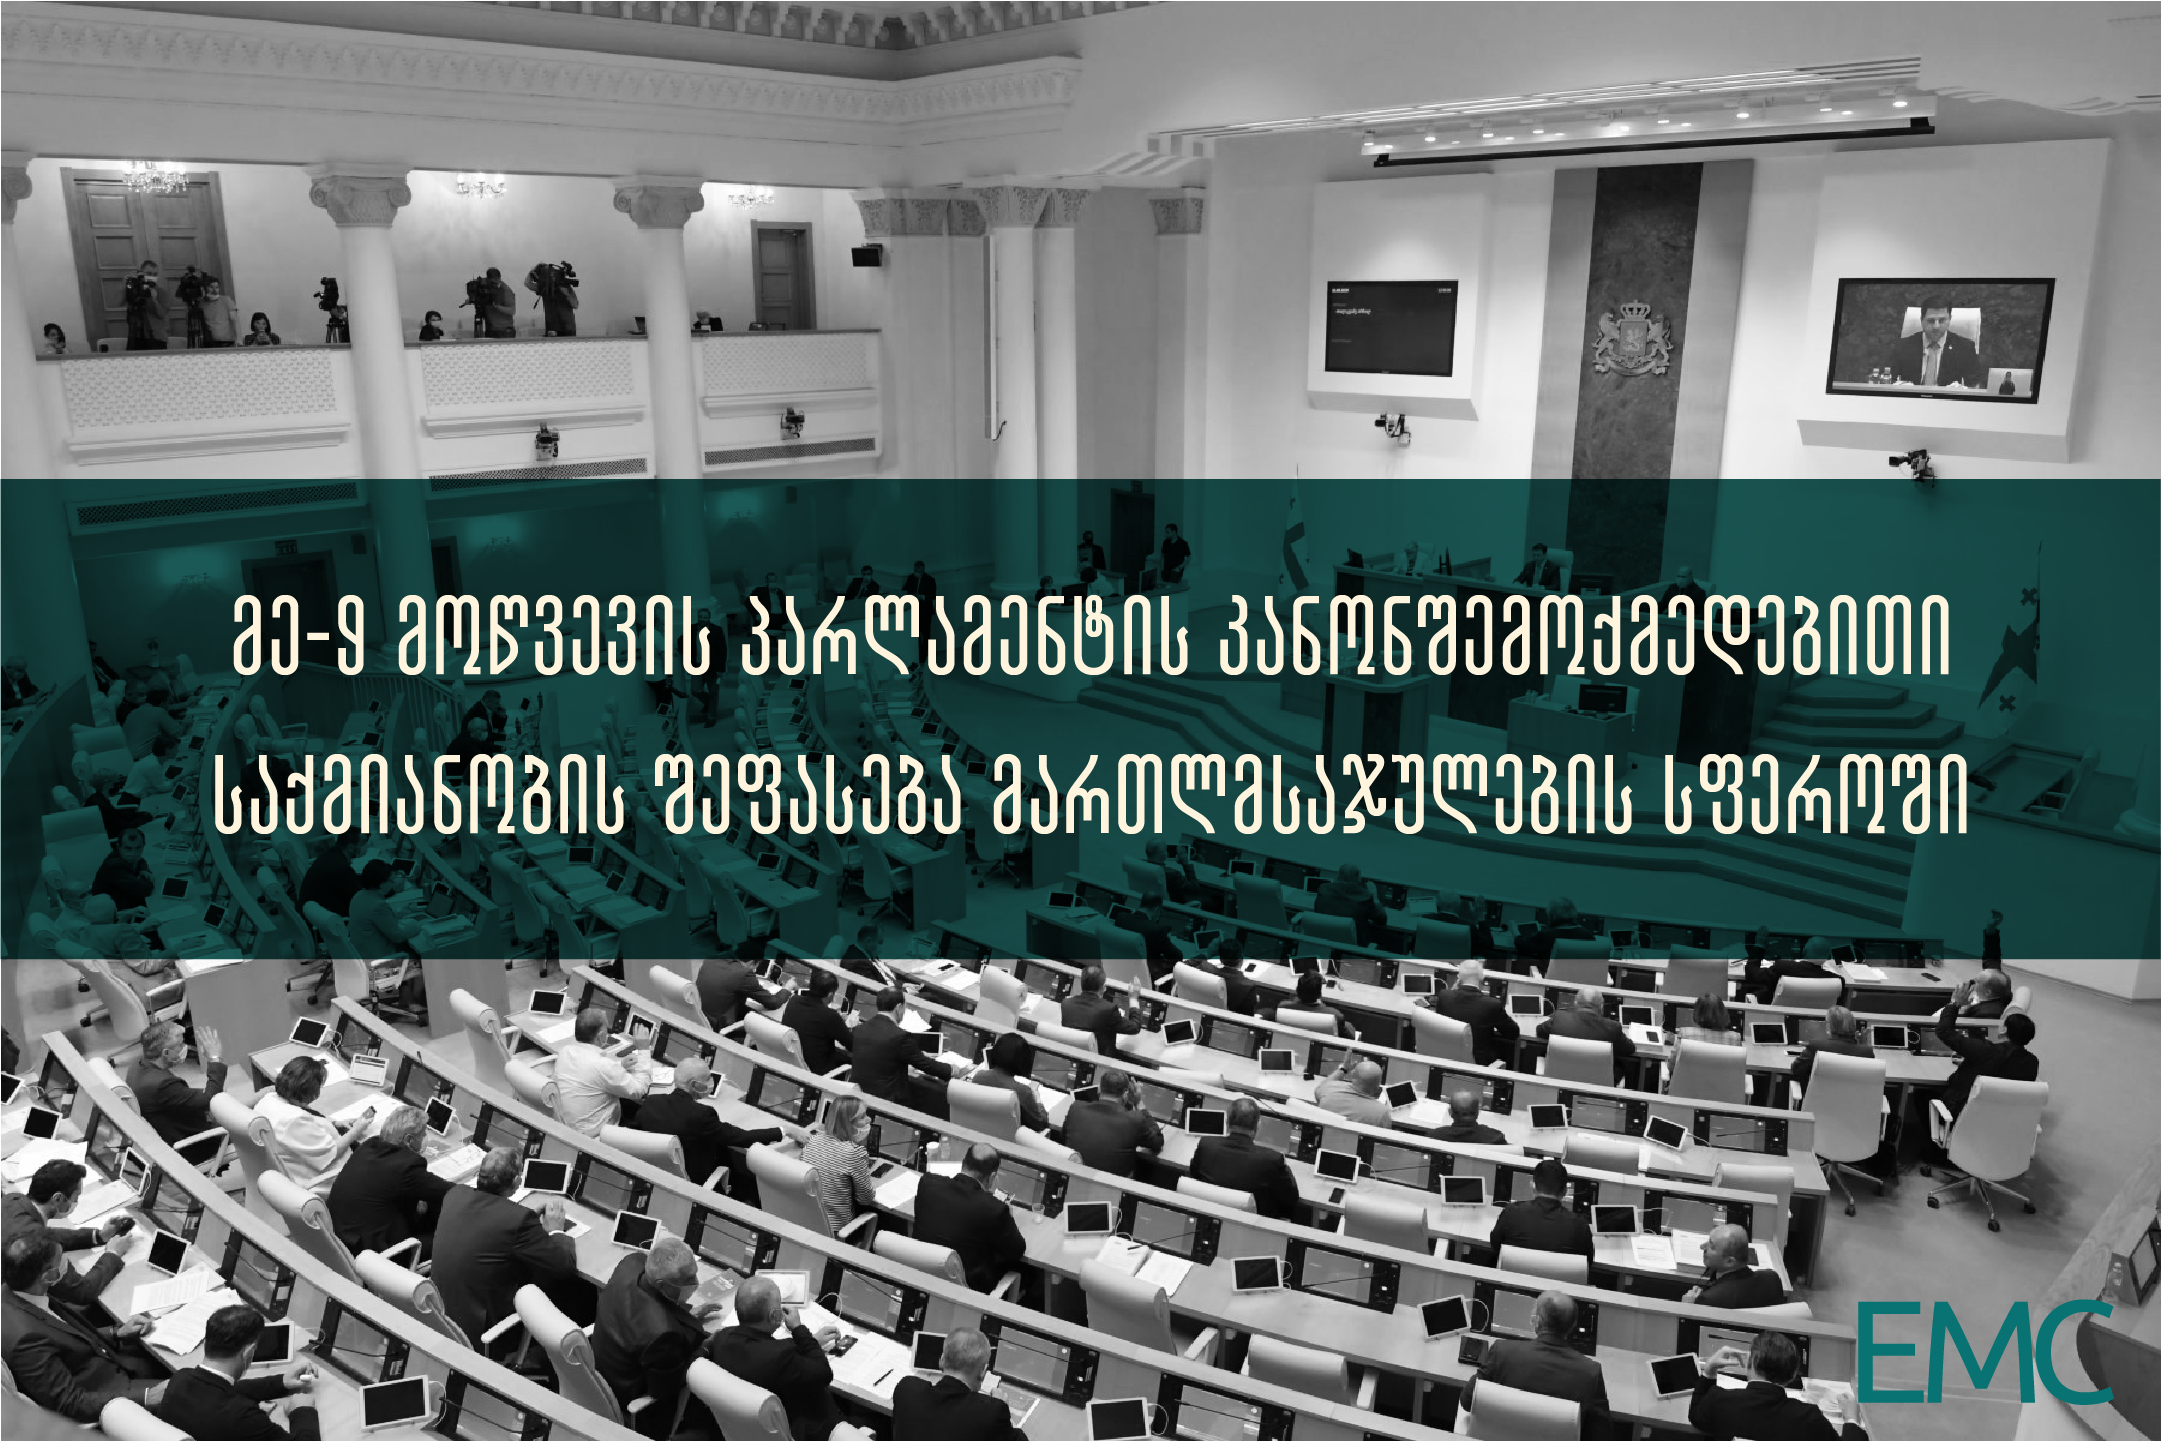 Evaluation of a lawmaking activity of the Parliament of the 9th convocation in the field of justice